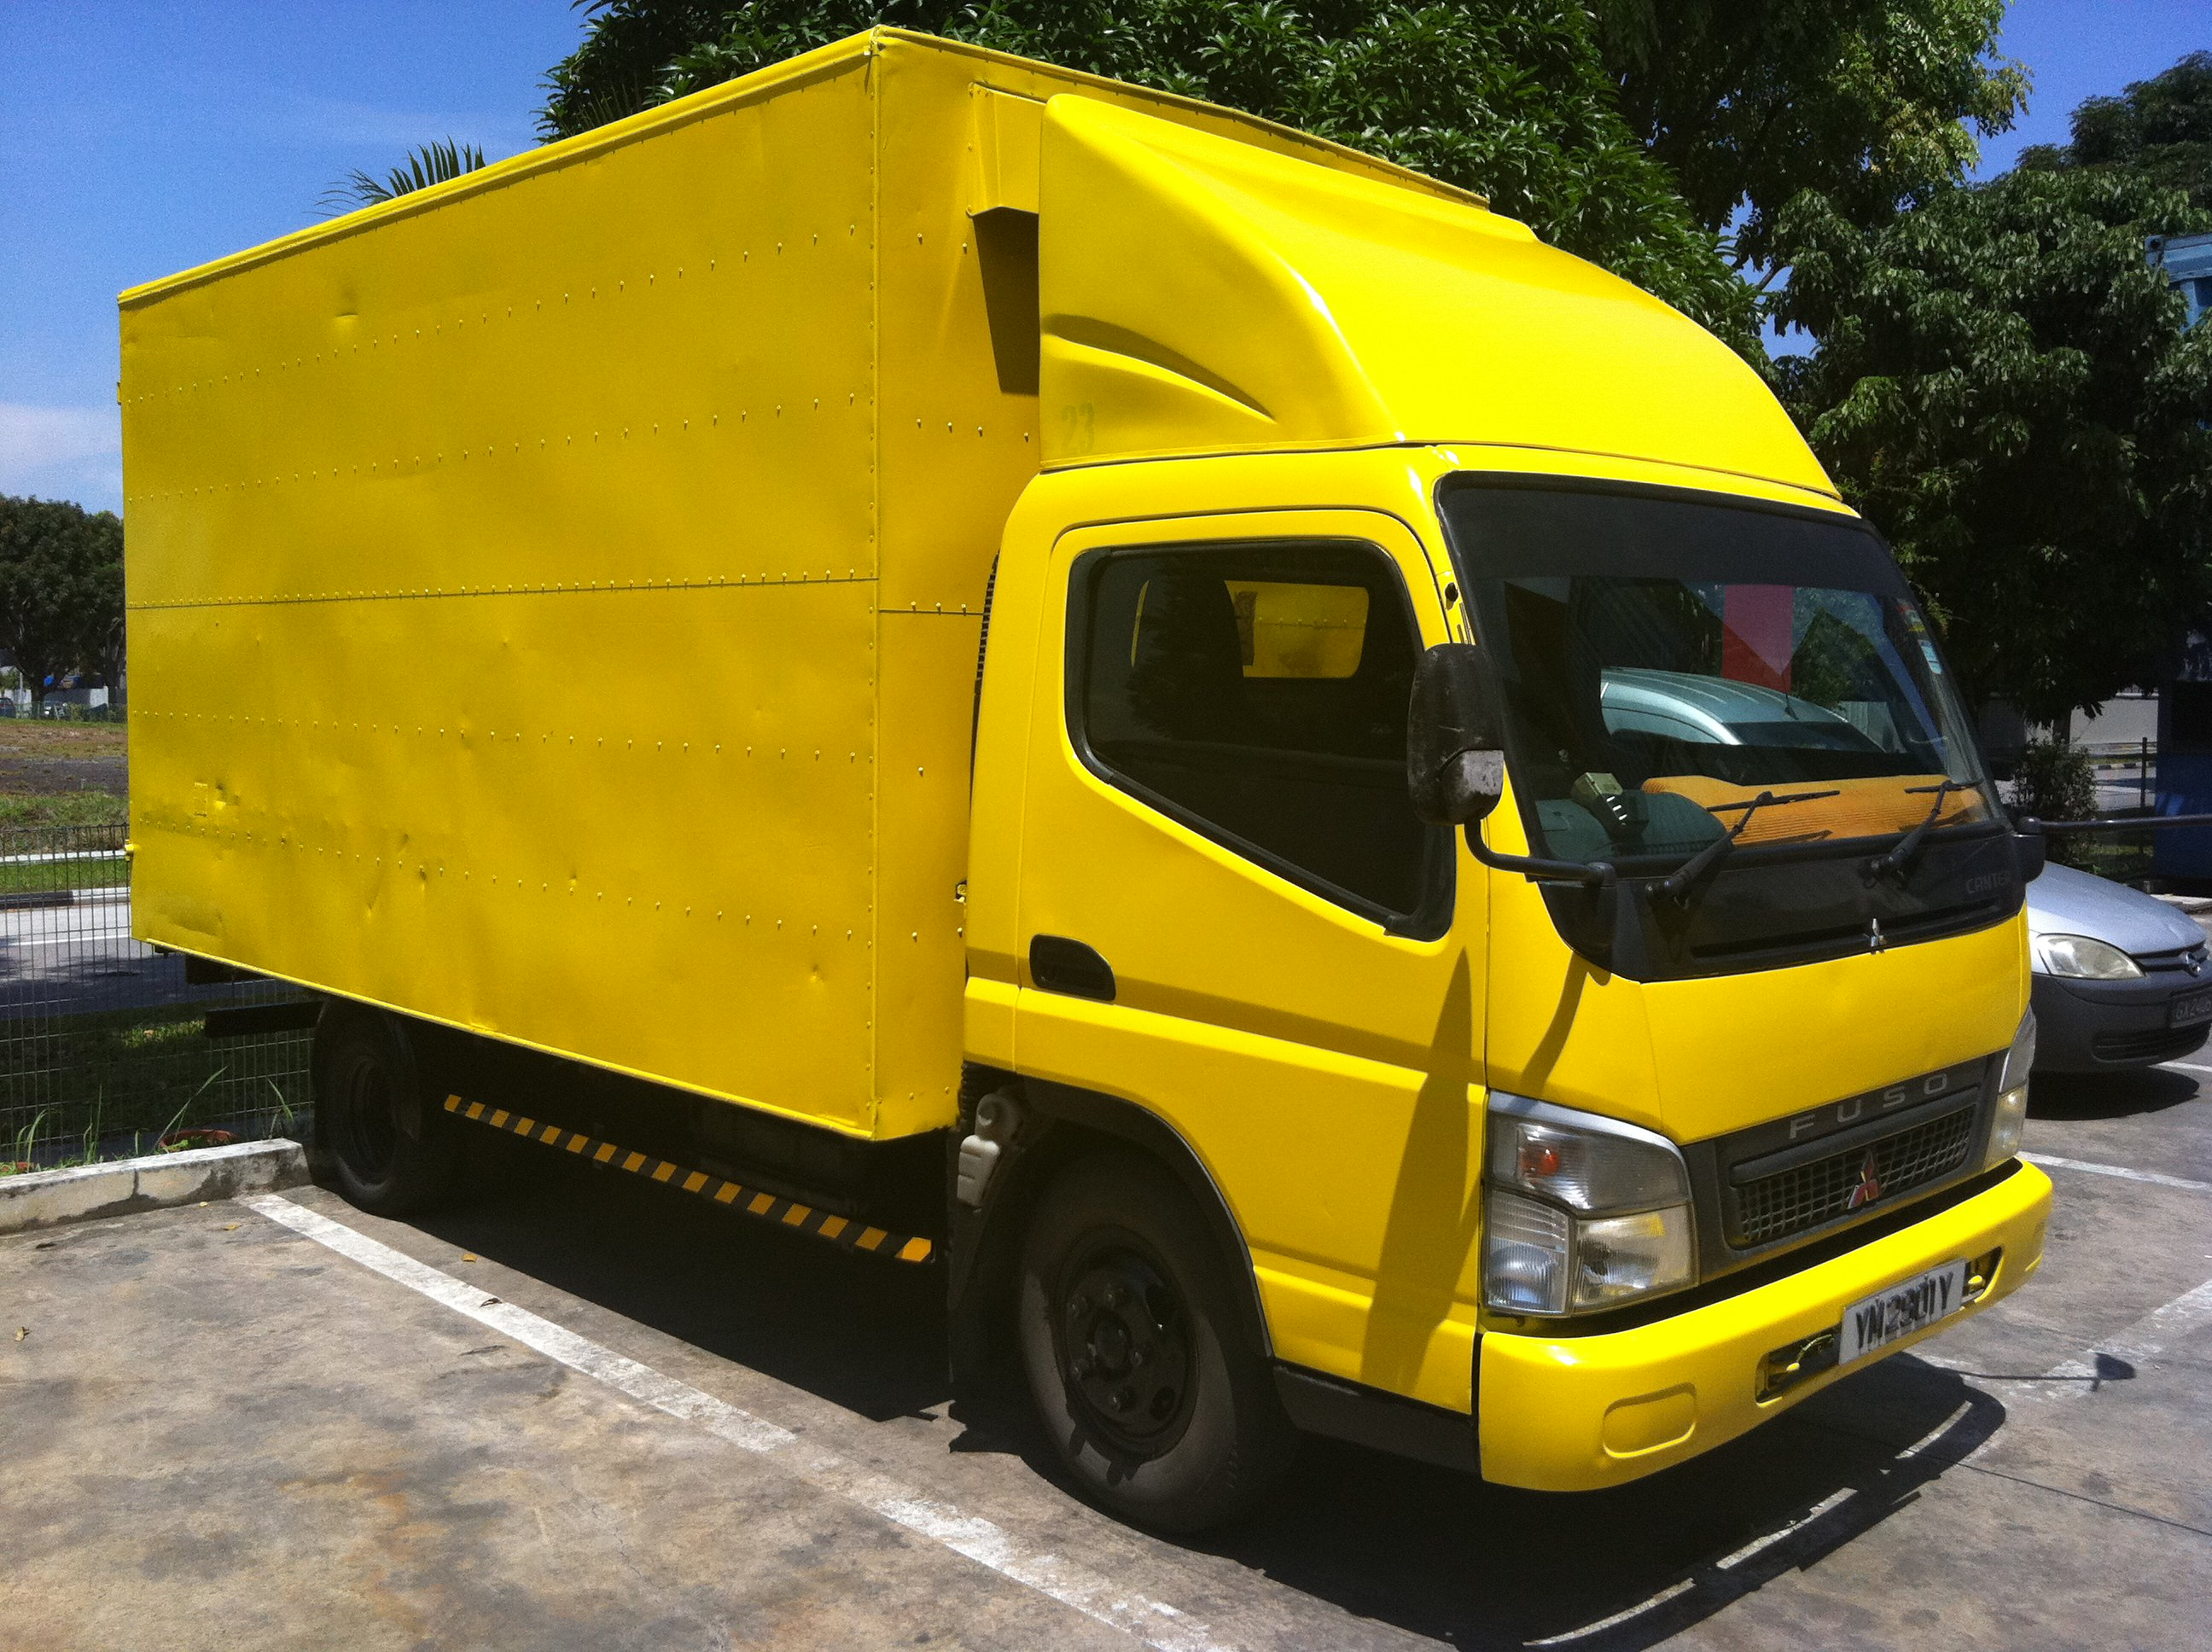 FOR HIRE: 14' ft Box Truck with Manpower